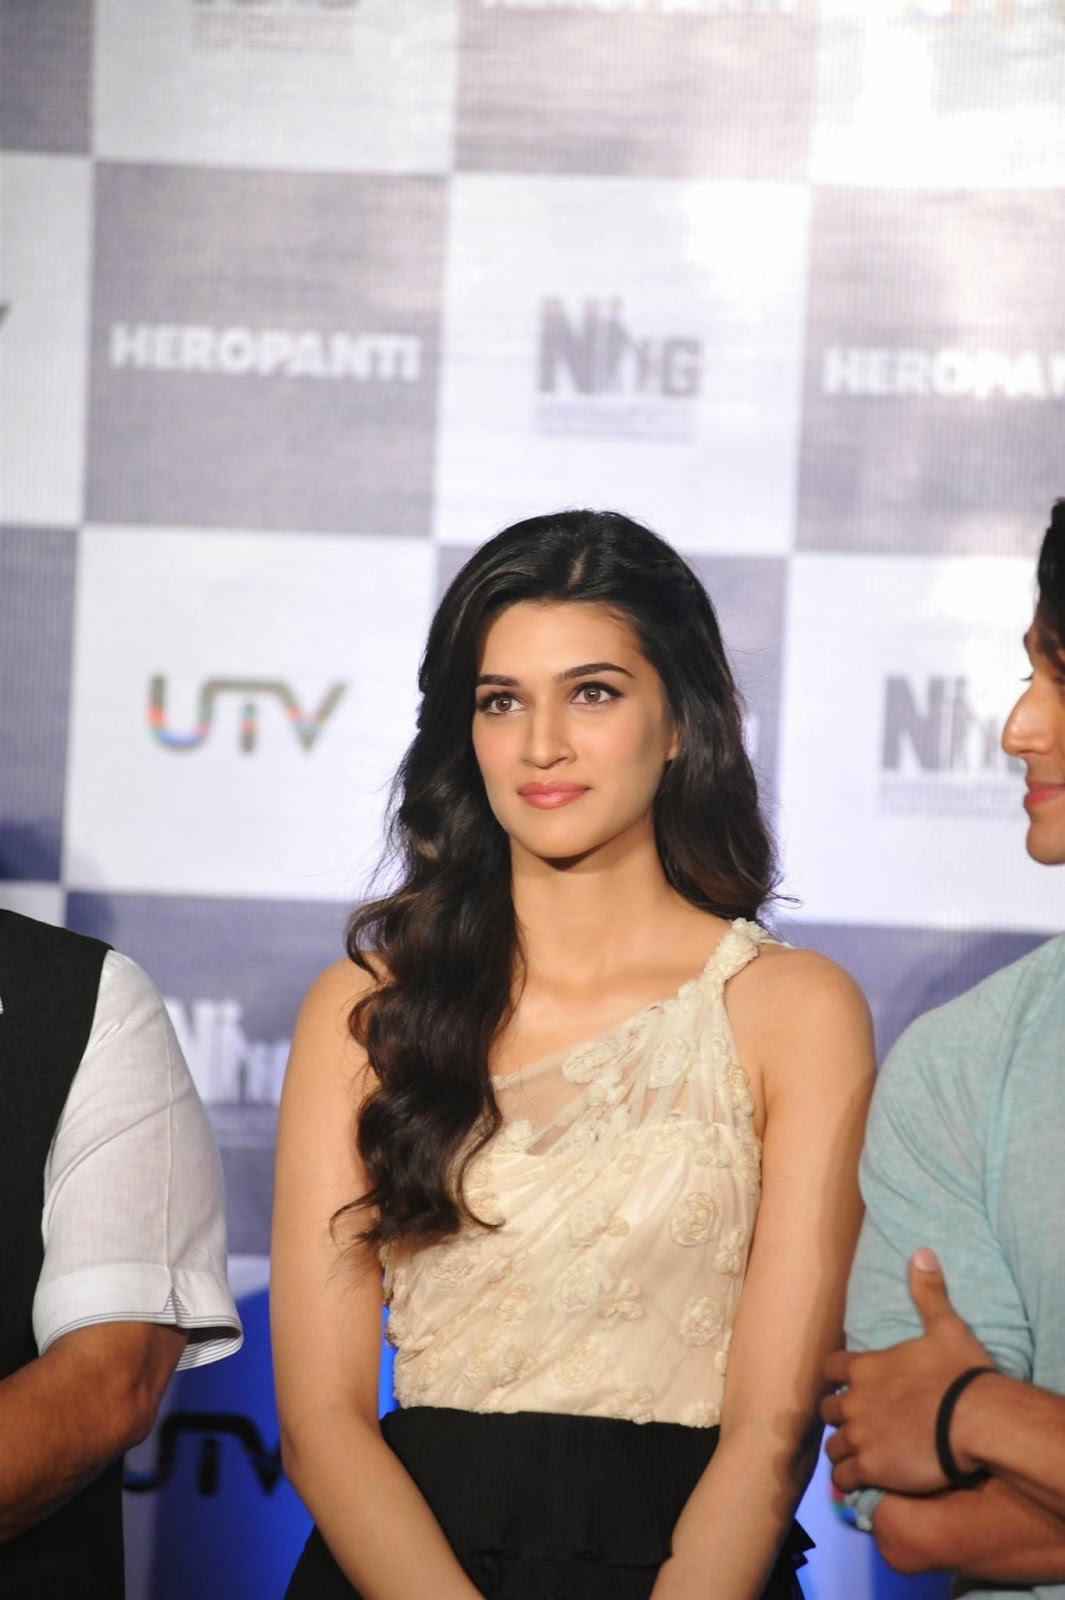 Kriti Sanon at First Look Launch of Heropanti Movie